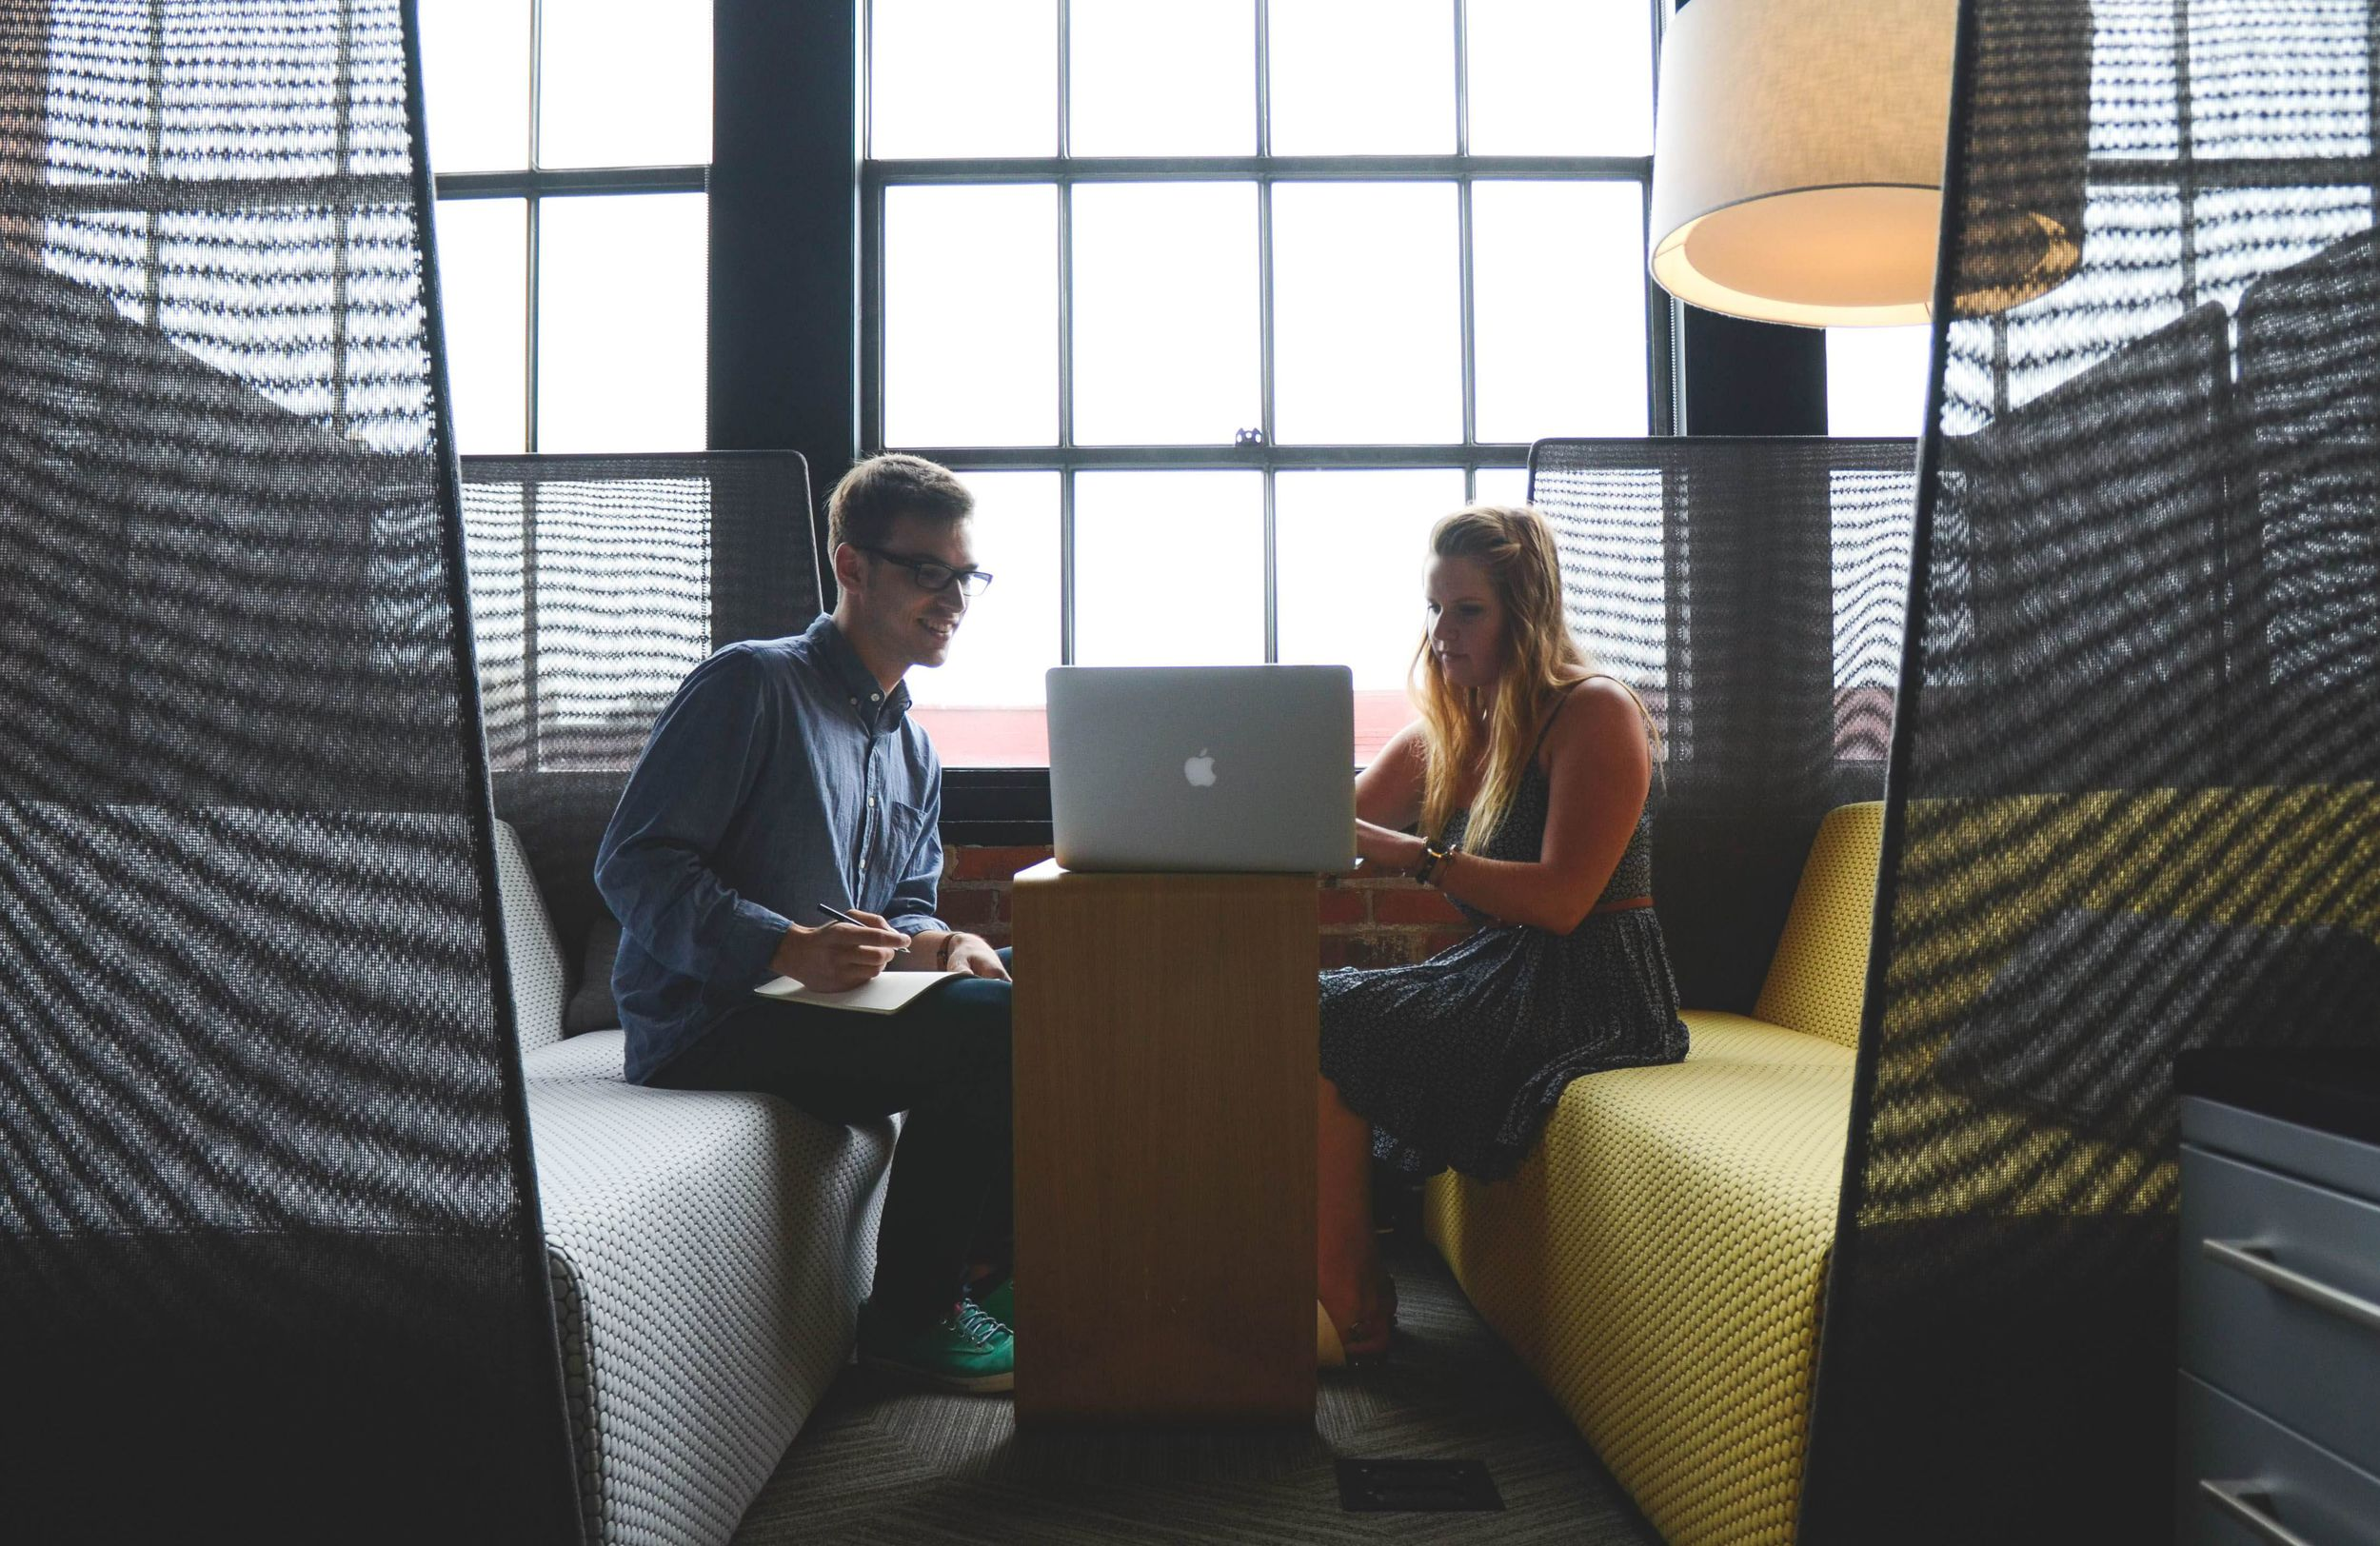 Man and woman looking at a Macbook in a cool office